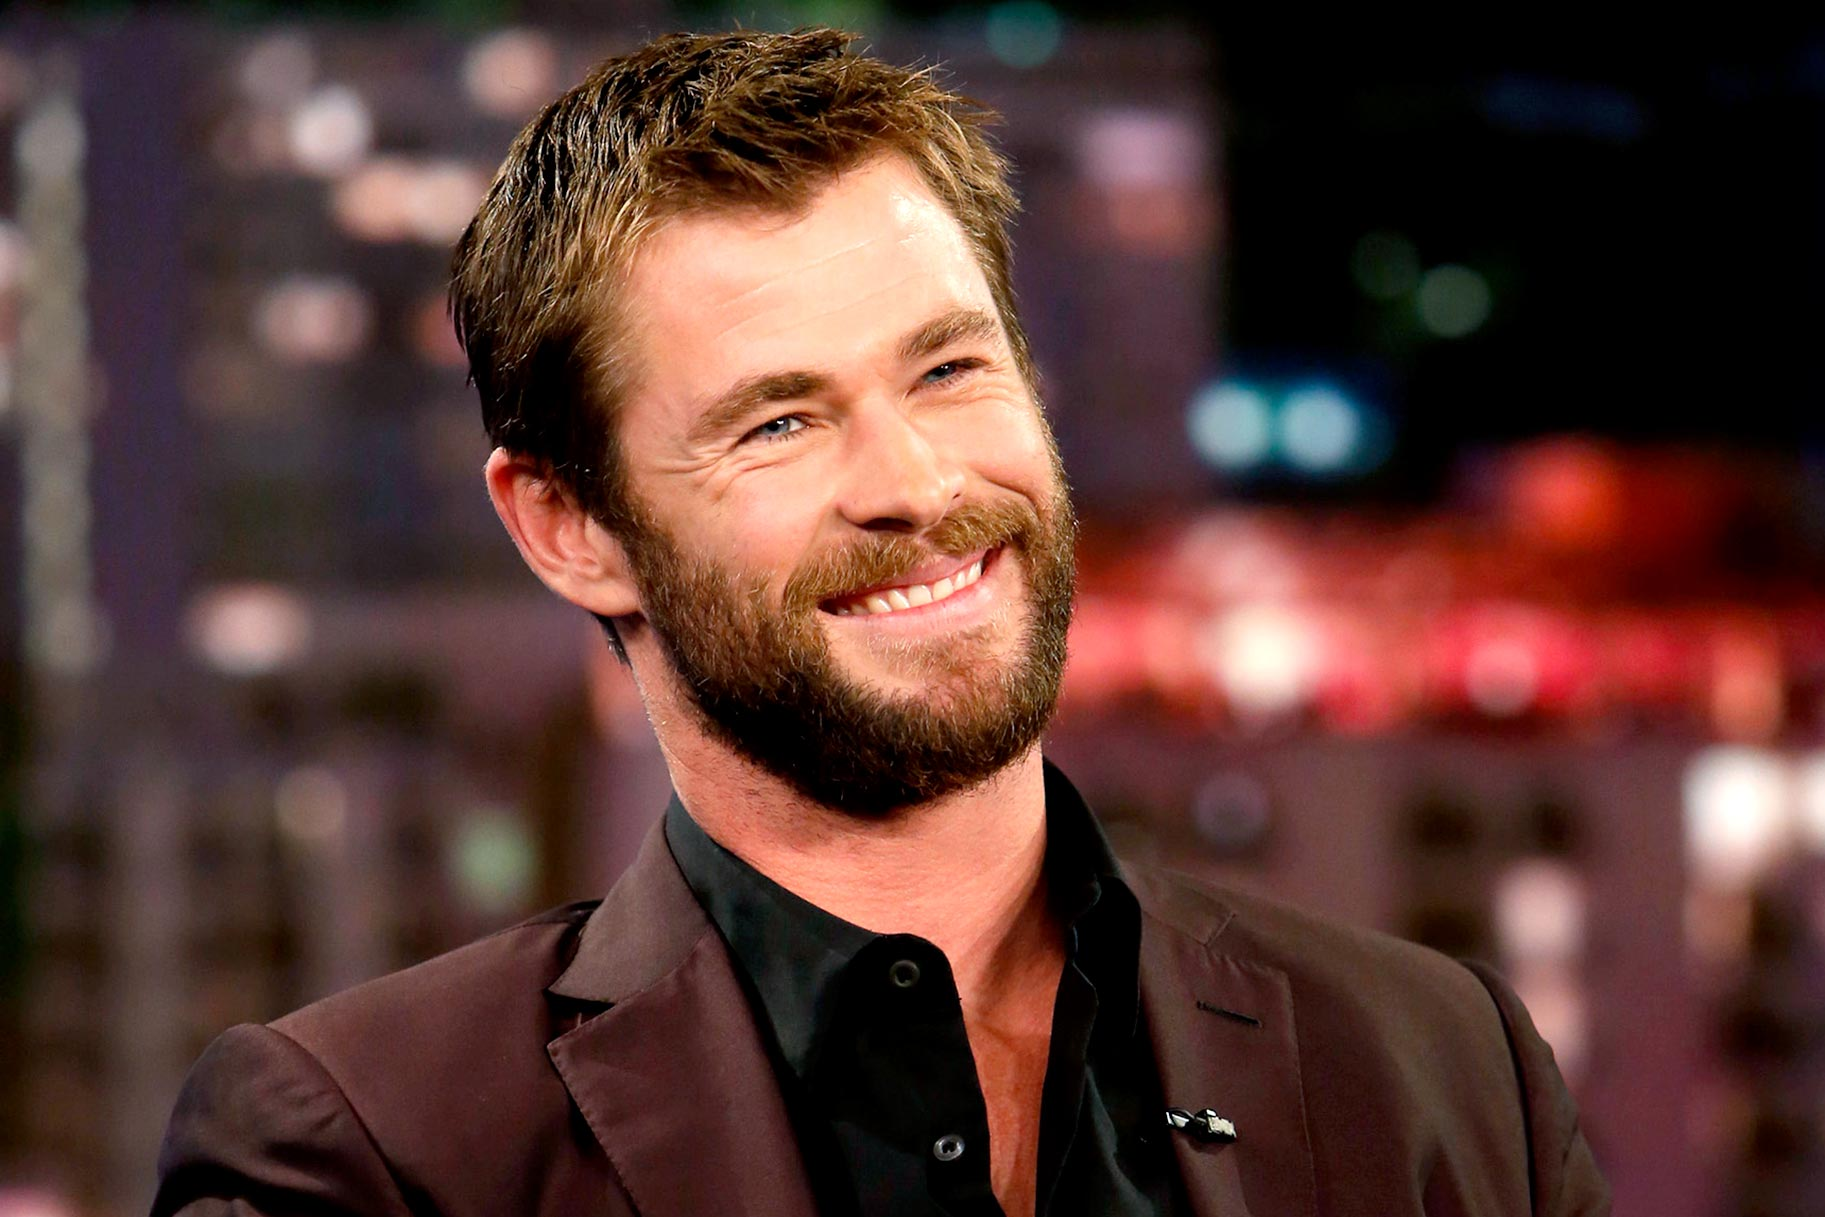 jet-set-chris-hemsworth.jpg